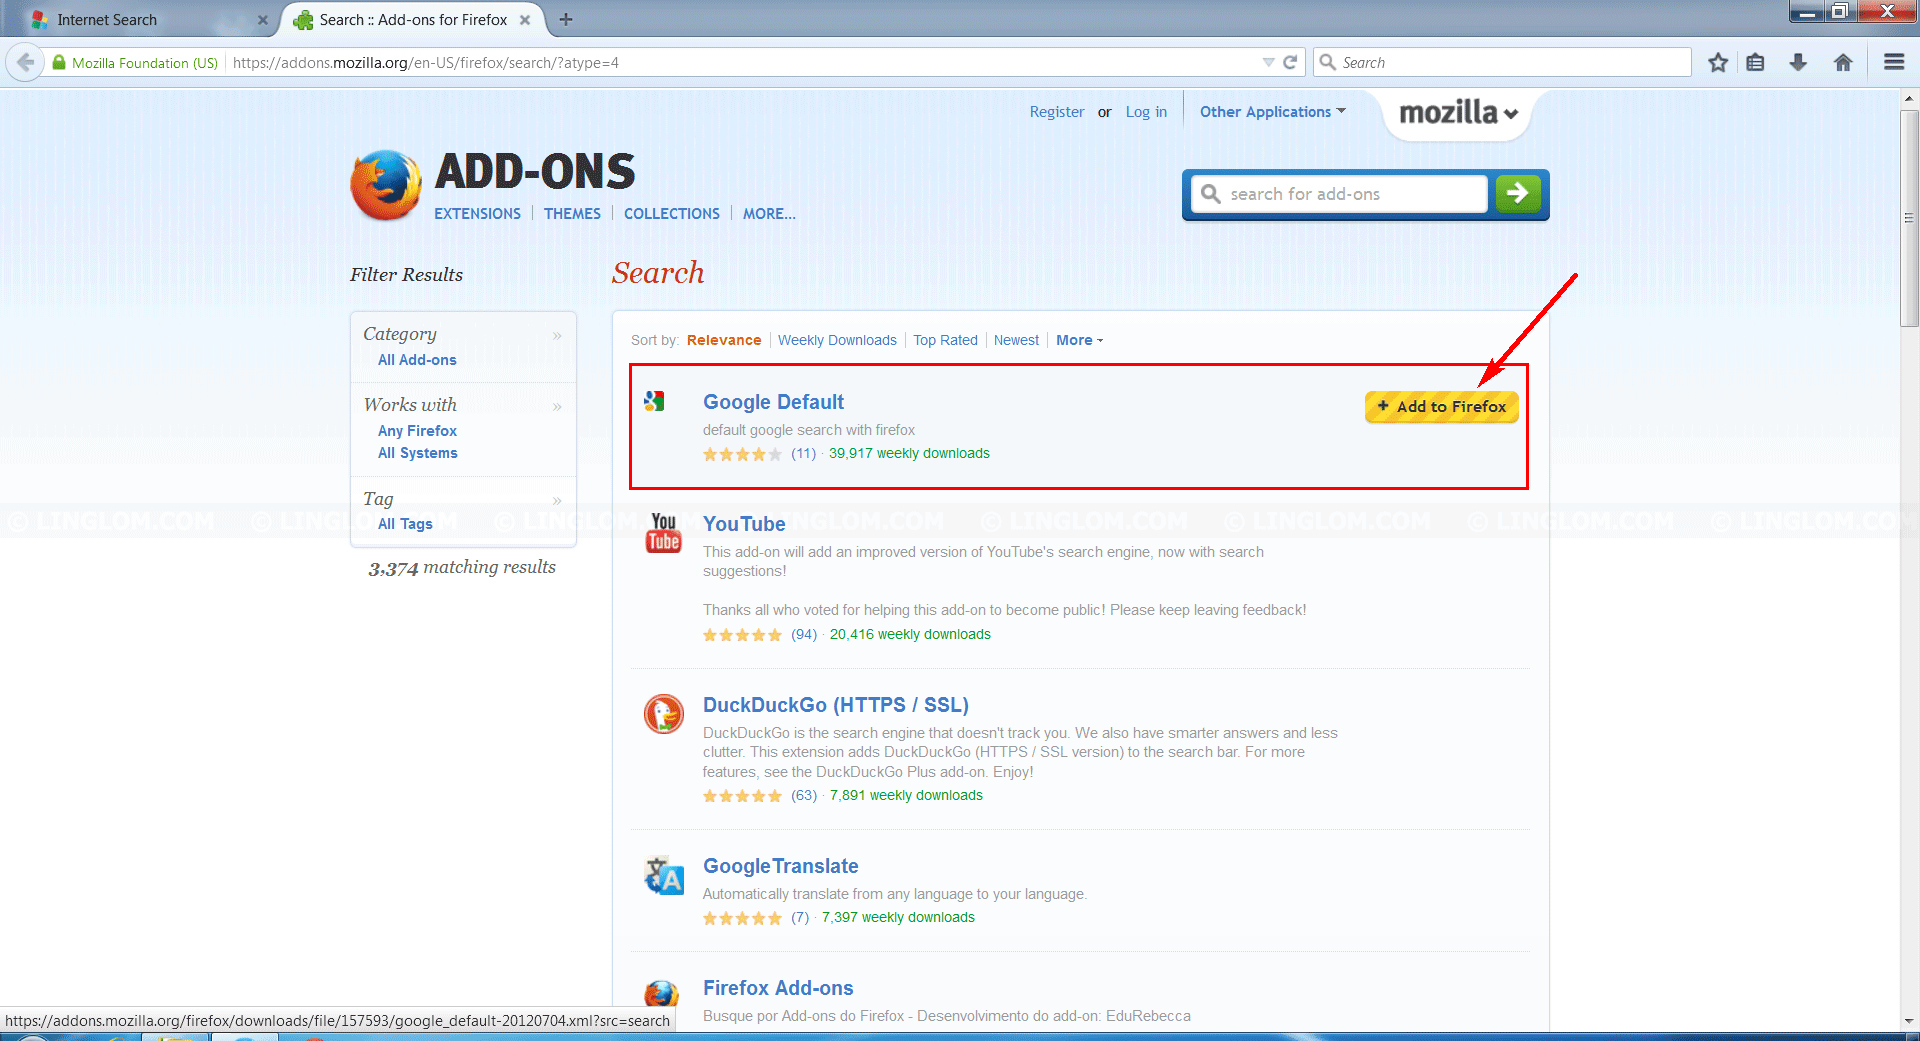 Search results – Add-ons for Firefox (en-US)